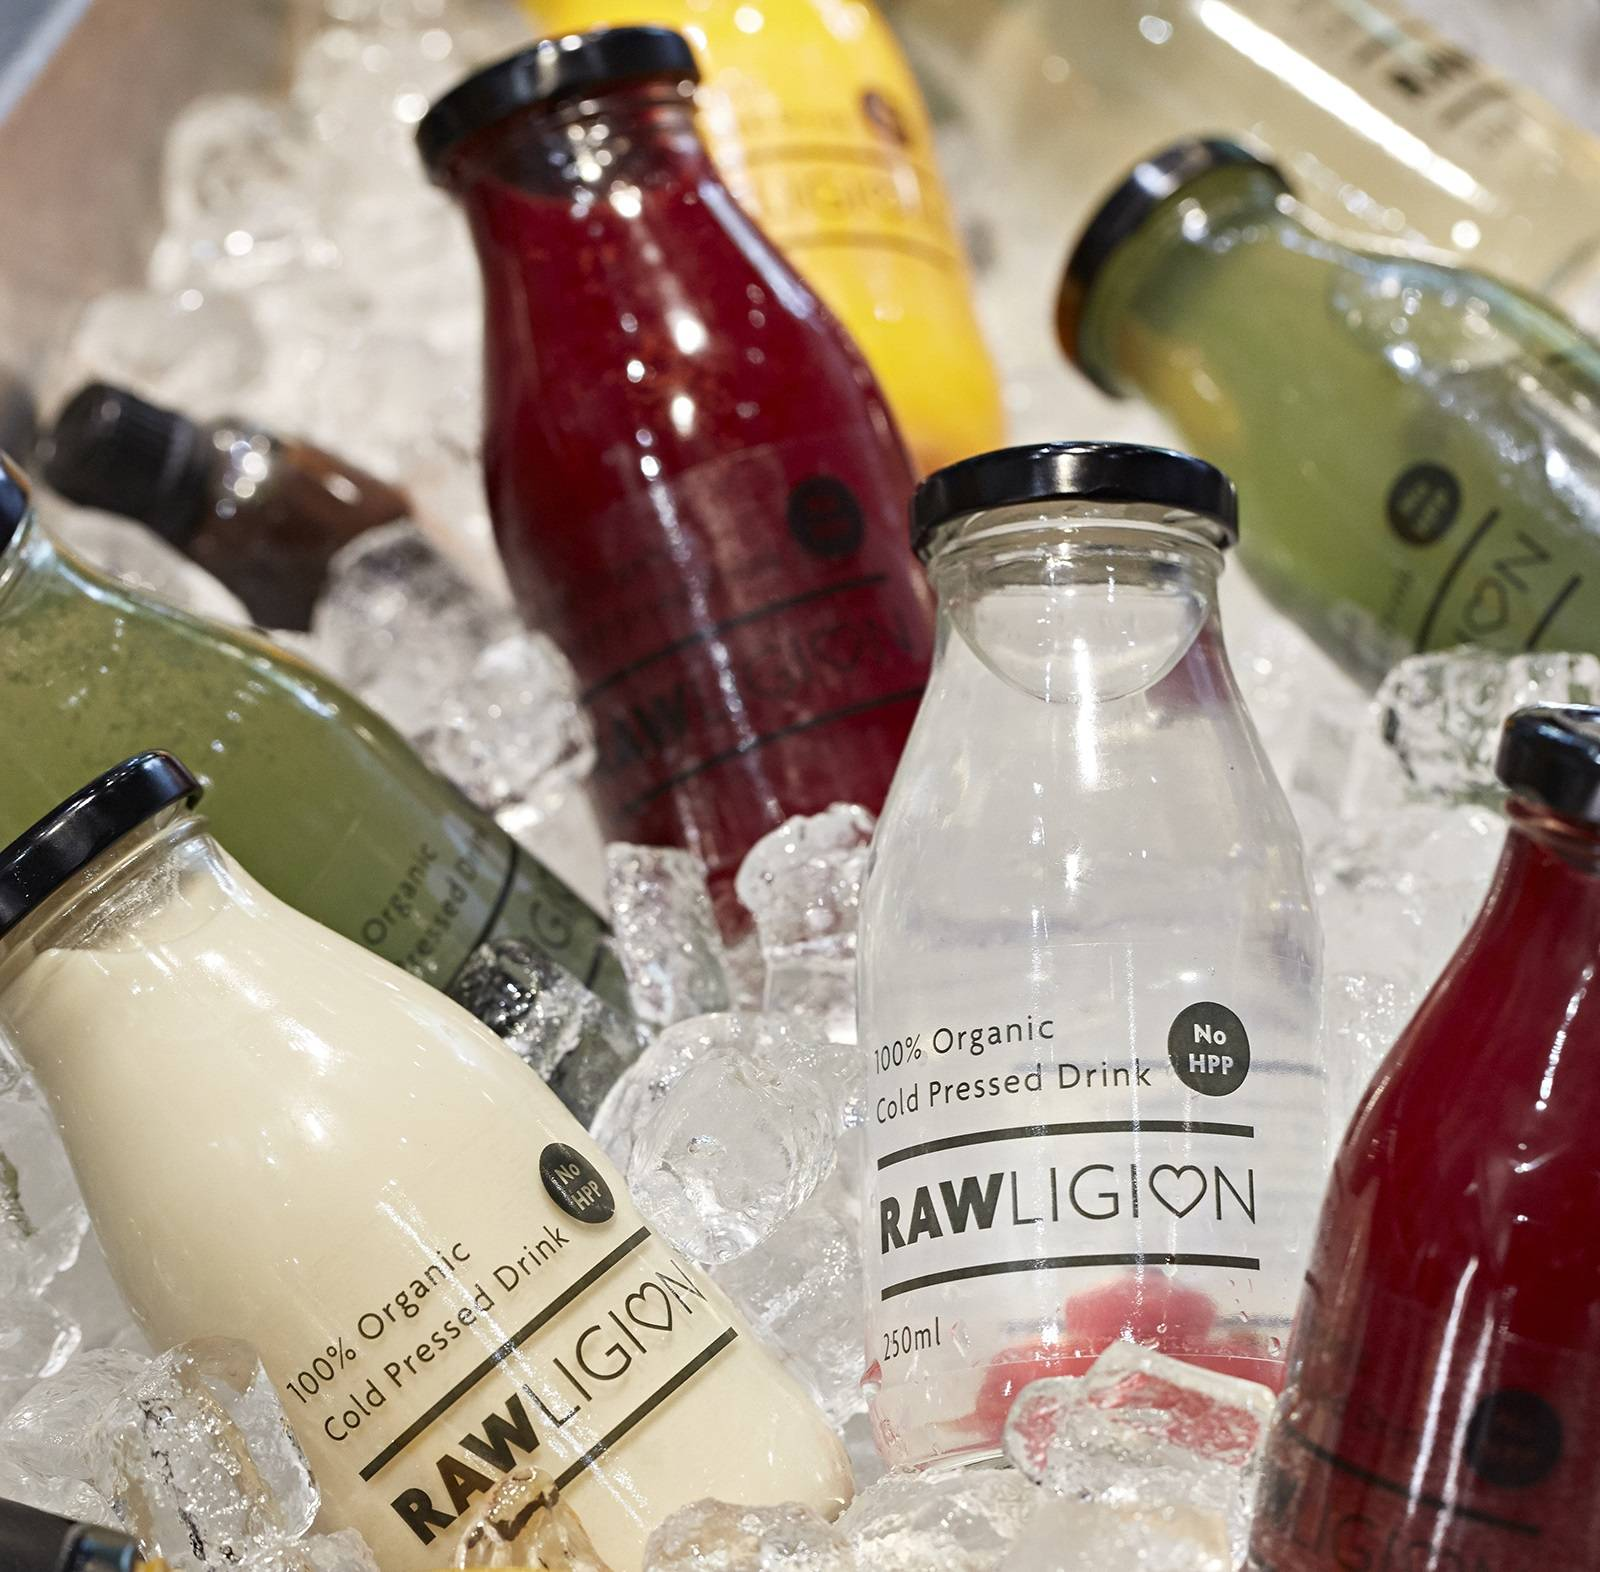 Premium Botanicals & Juices @ Rawligion, London (photo from: http://www.rawligion.co.uk/)